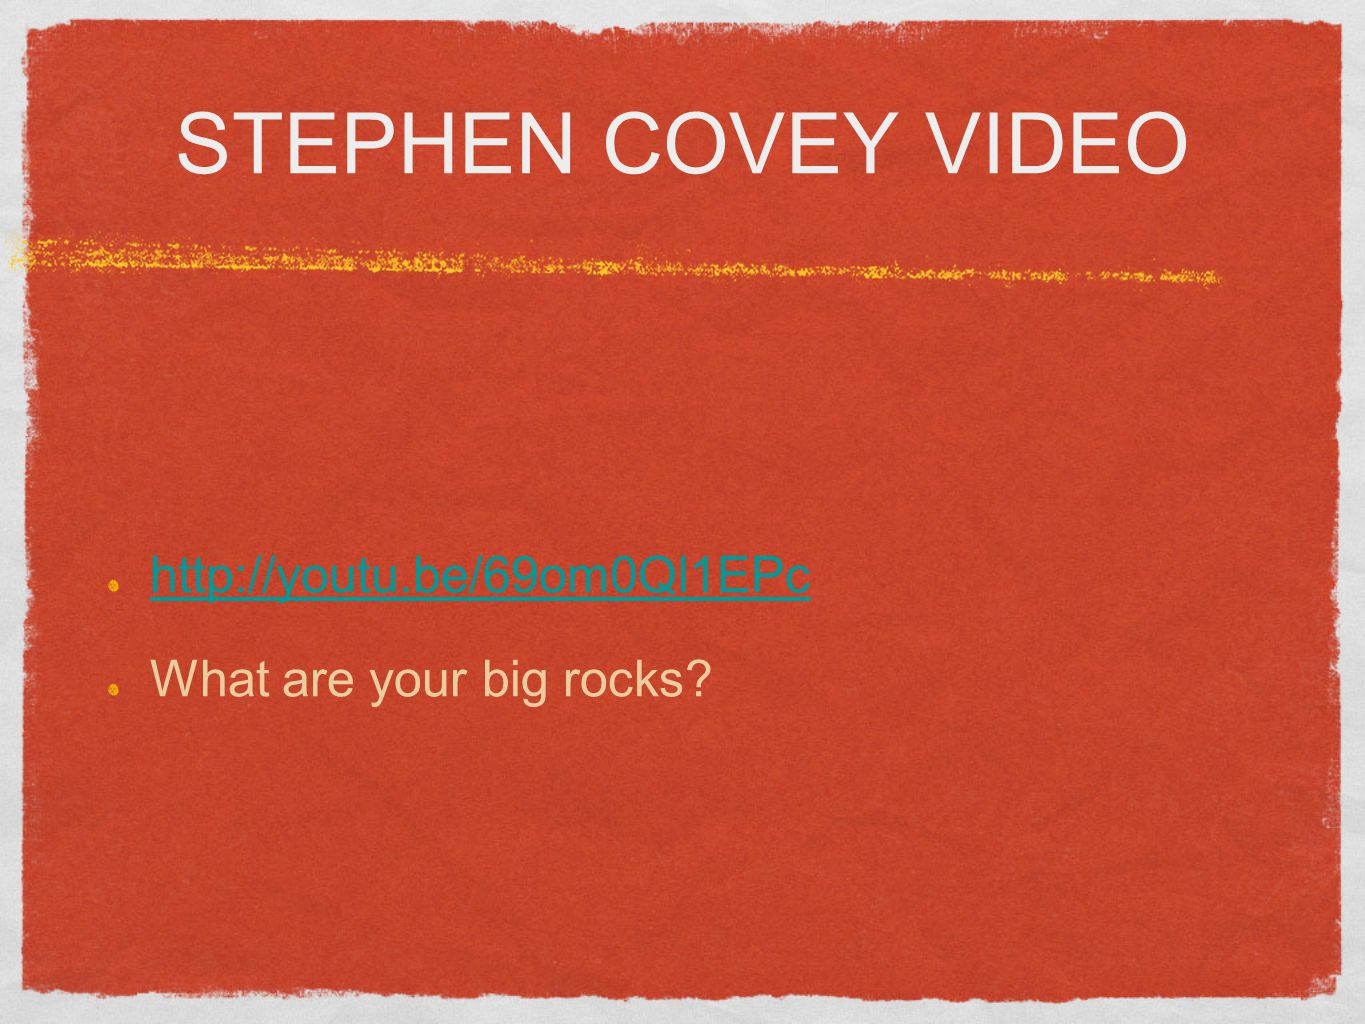 STEPHEN COVEY VIDEO http://youtu.be/69om0Ql1EPc What are your big rocks?